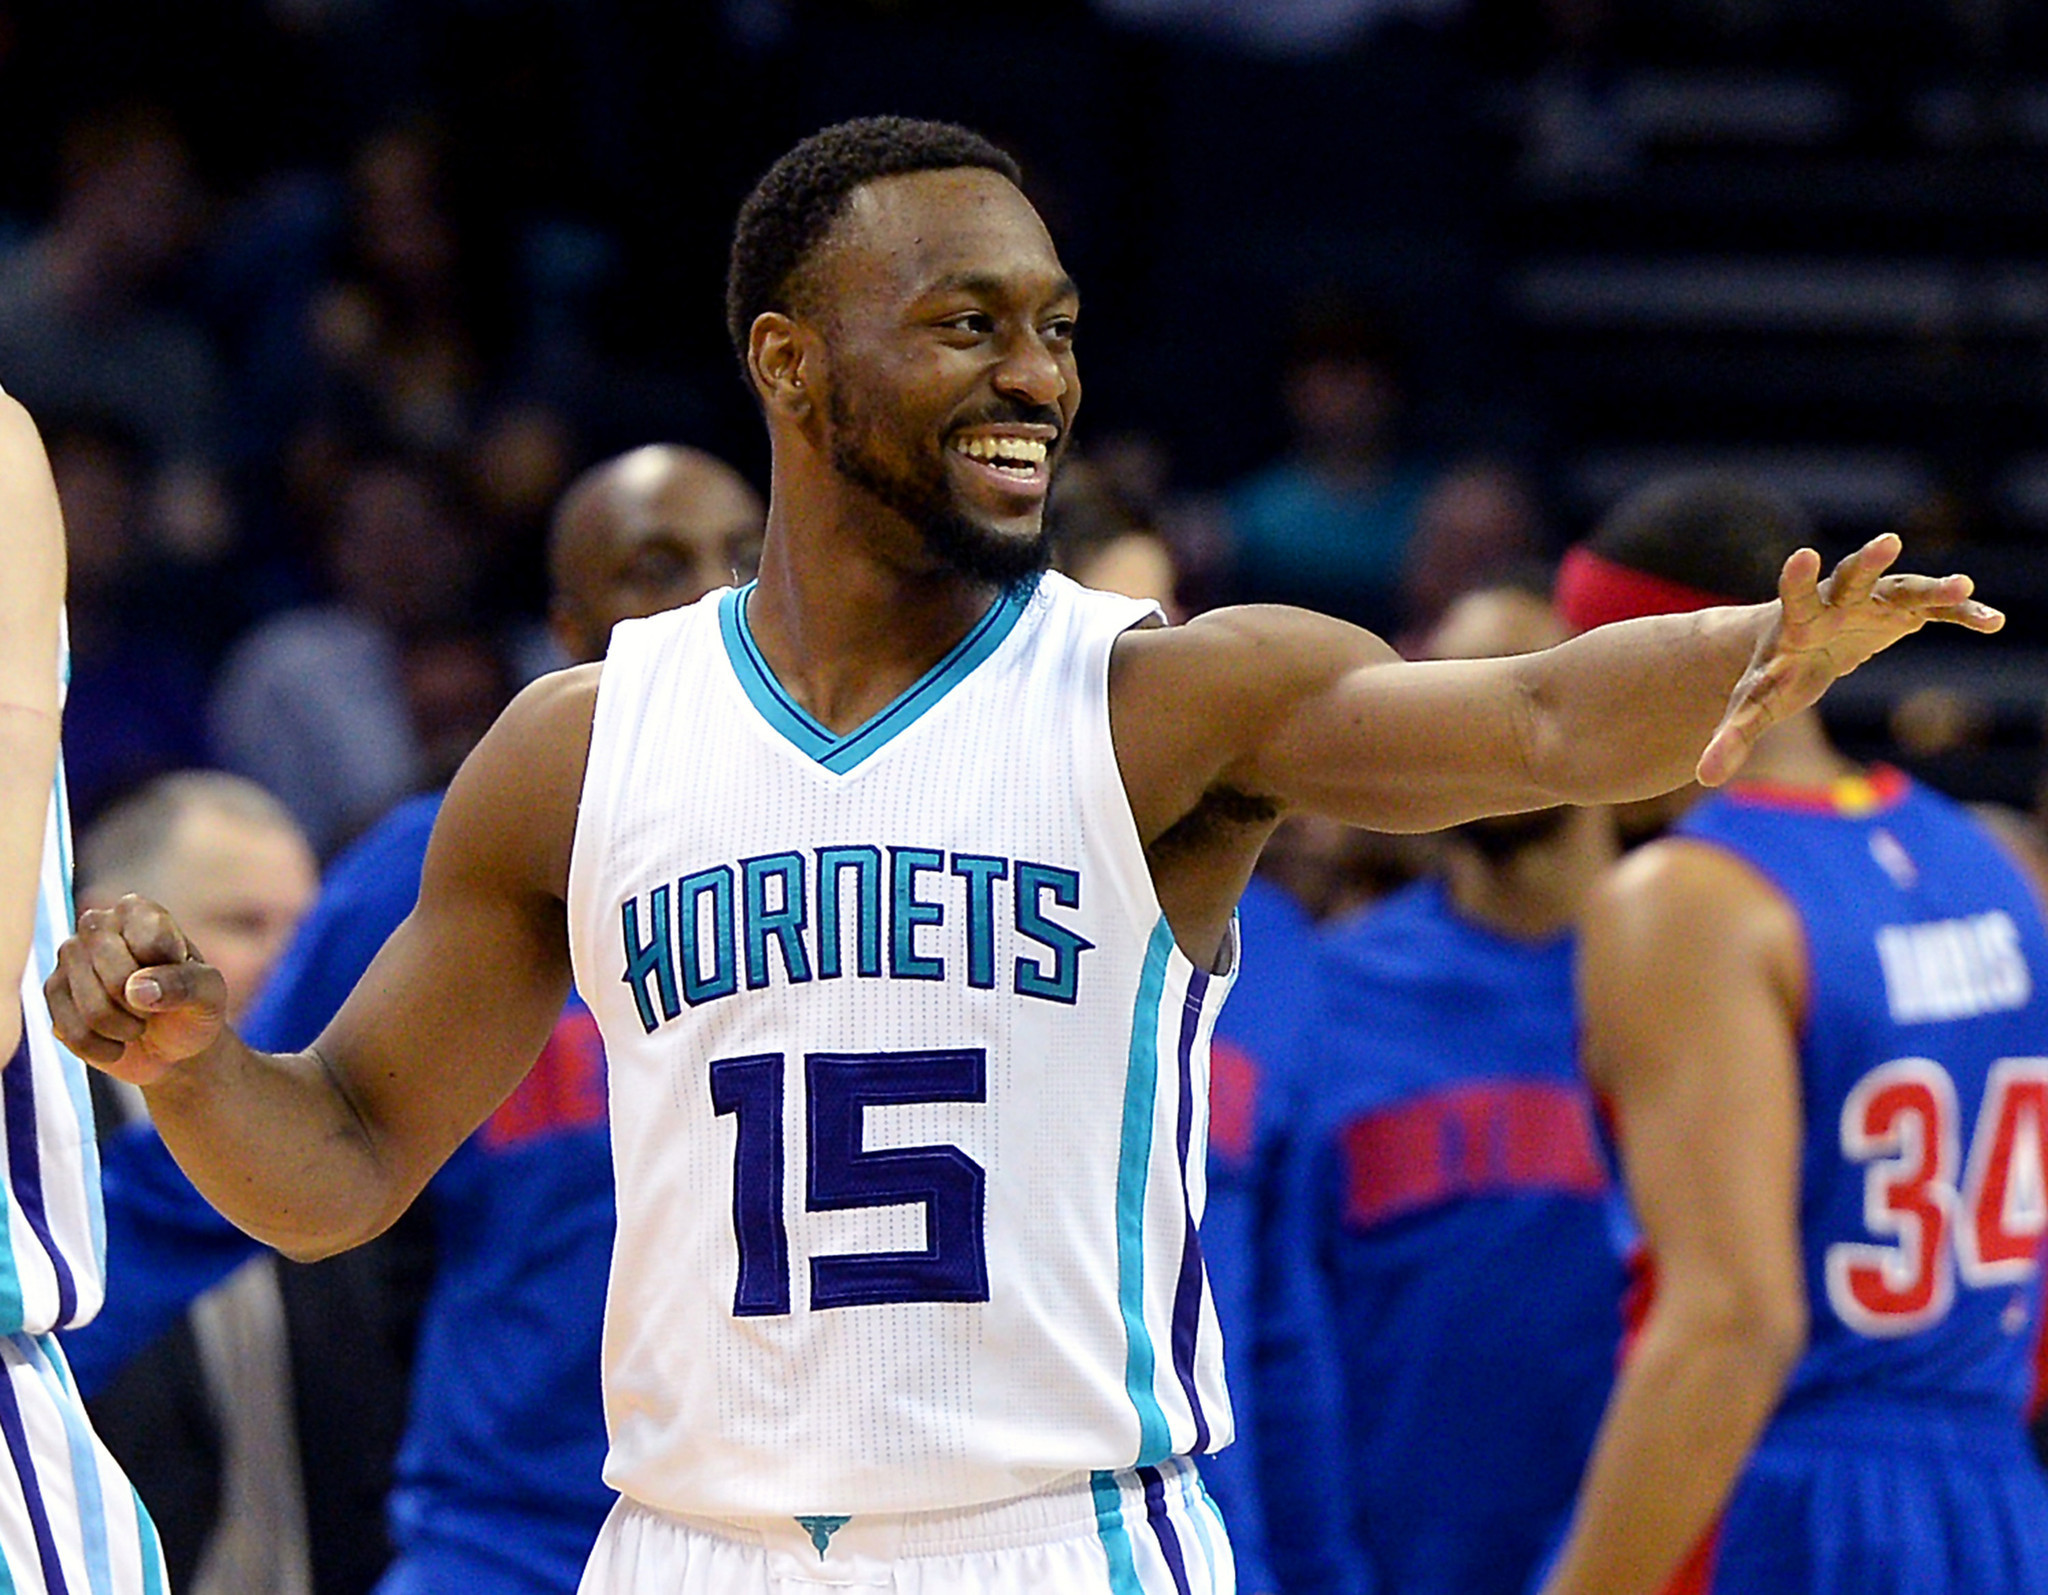 Just Like Old Times: Kemba Walker Again Taking A Team (Hornets) On His Back - Hartford Courant